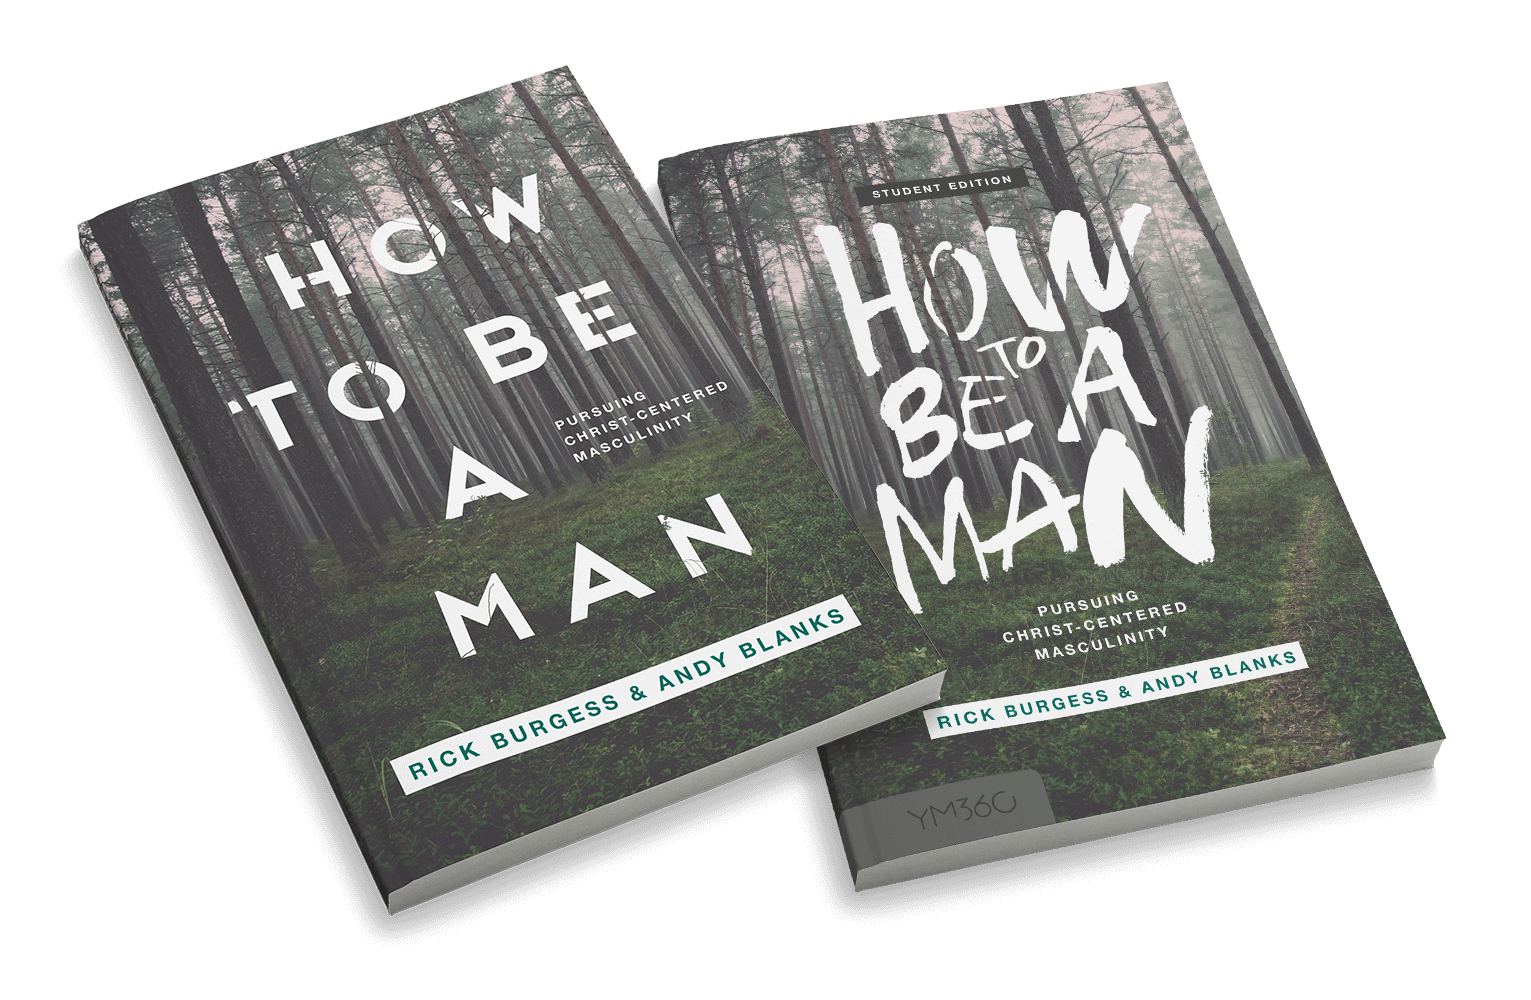 How to Be a Man: Pursuing Christ-Centered Masculinity Small Group Bundle